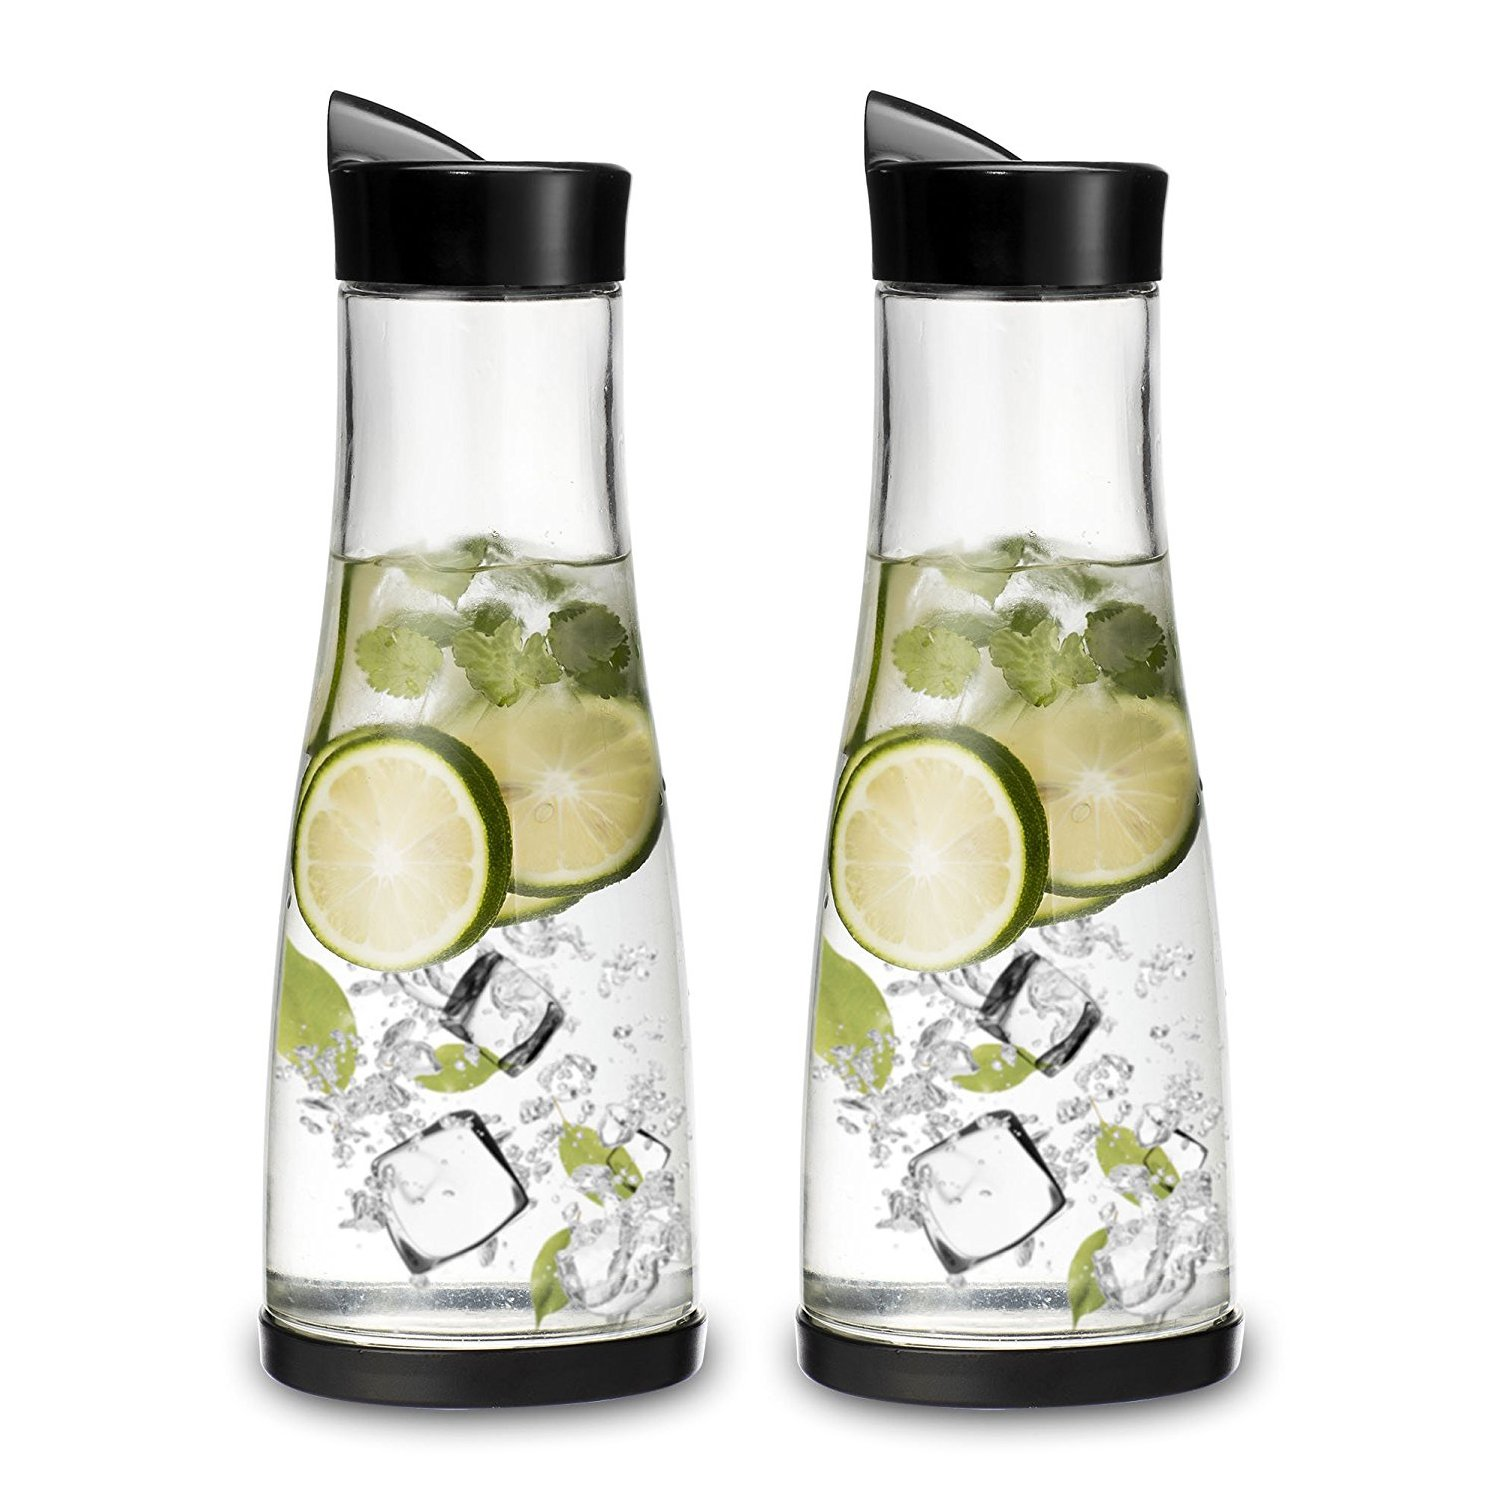 Chefoh Glass Water Carafe With Lid And Protective Base, EZ Pour Drip Spout 1 Liter/33.8 Oz, Fridge Water Pitcher Bottle Dispenser, Great For Juice, Lemonade, Iced Tea, Milk, Wine | Set of 2